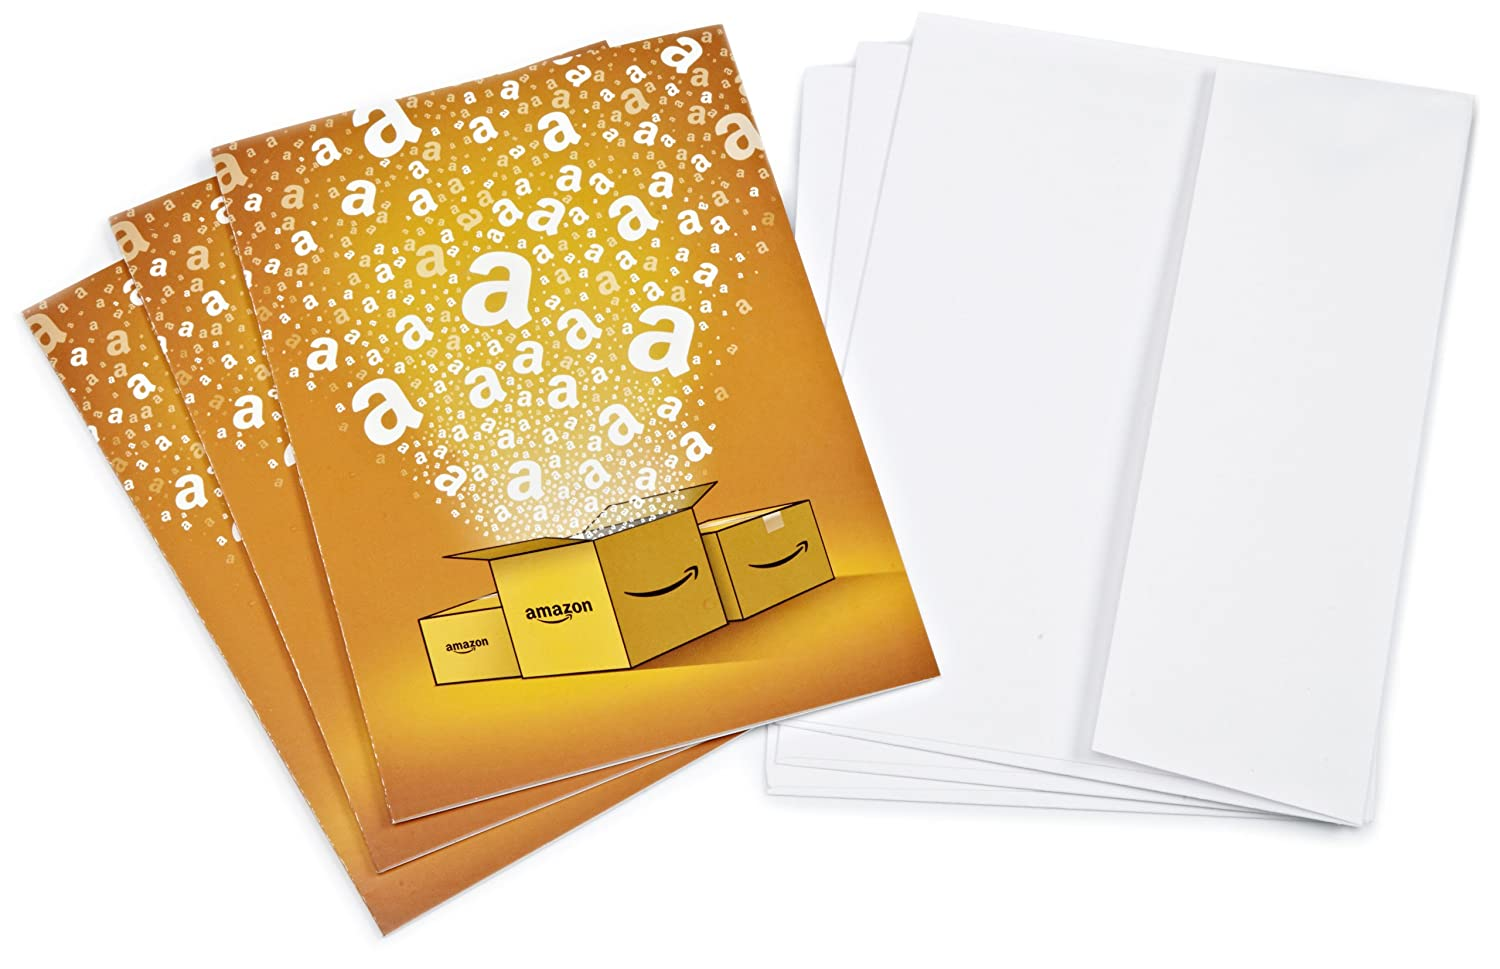 Amazon.co.uk Gift Cards - 3-Pack Greeting Cards - FREE One-Day Delivery Amazon EU S.à.r.l.